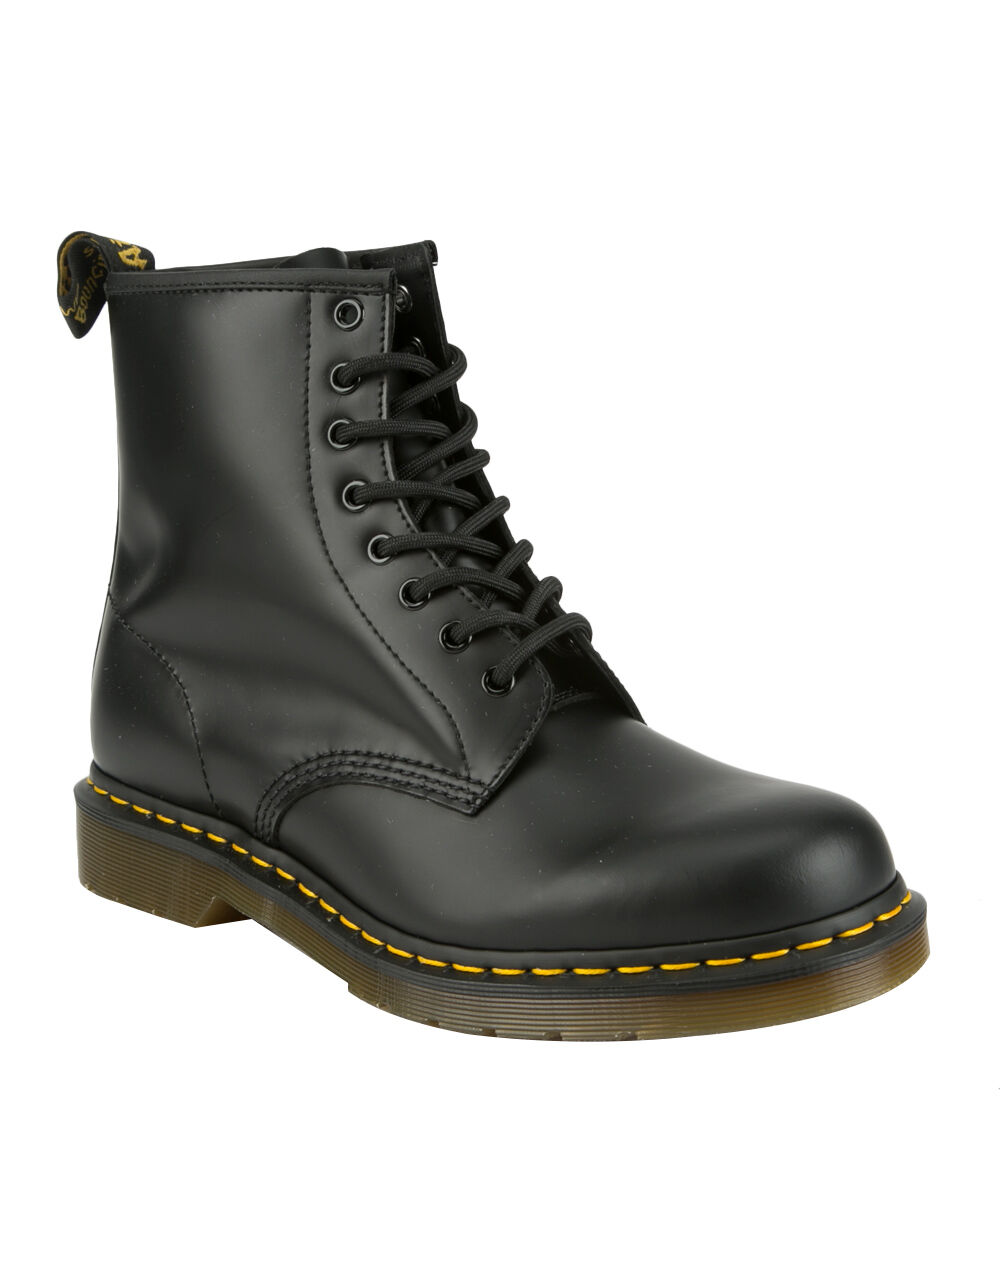 Image of DR. MARTENS 1460 BLACK SMOOTH BOOTS